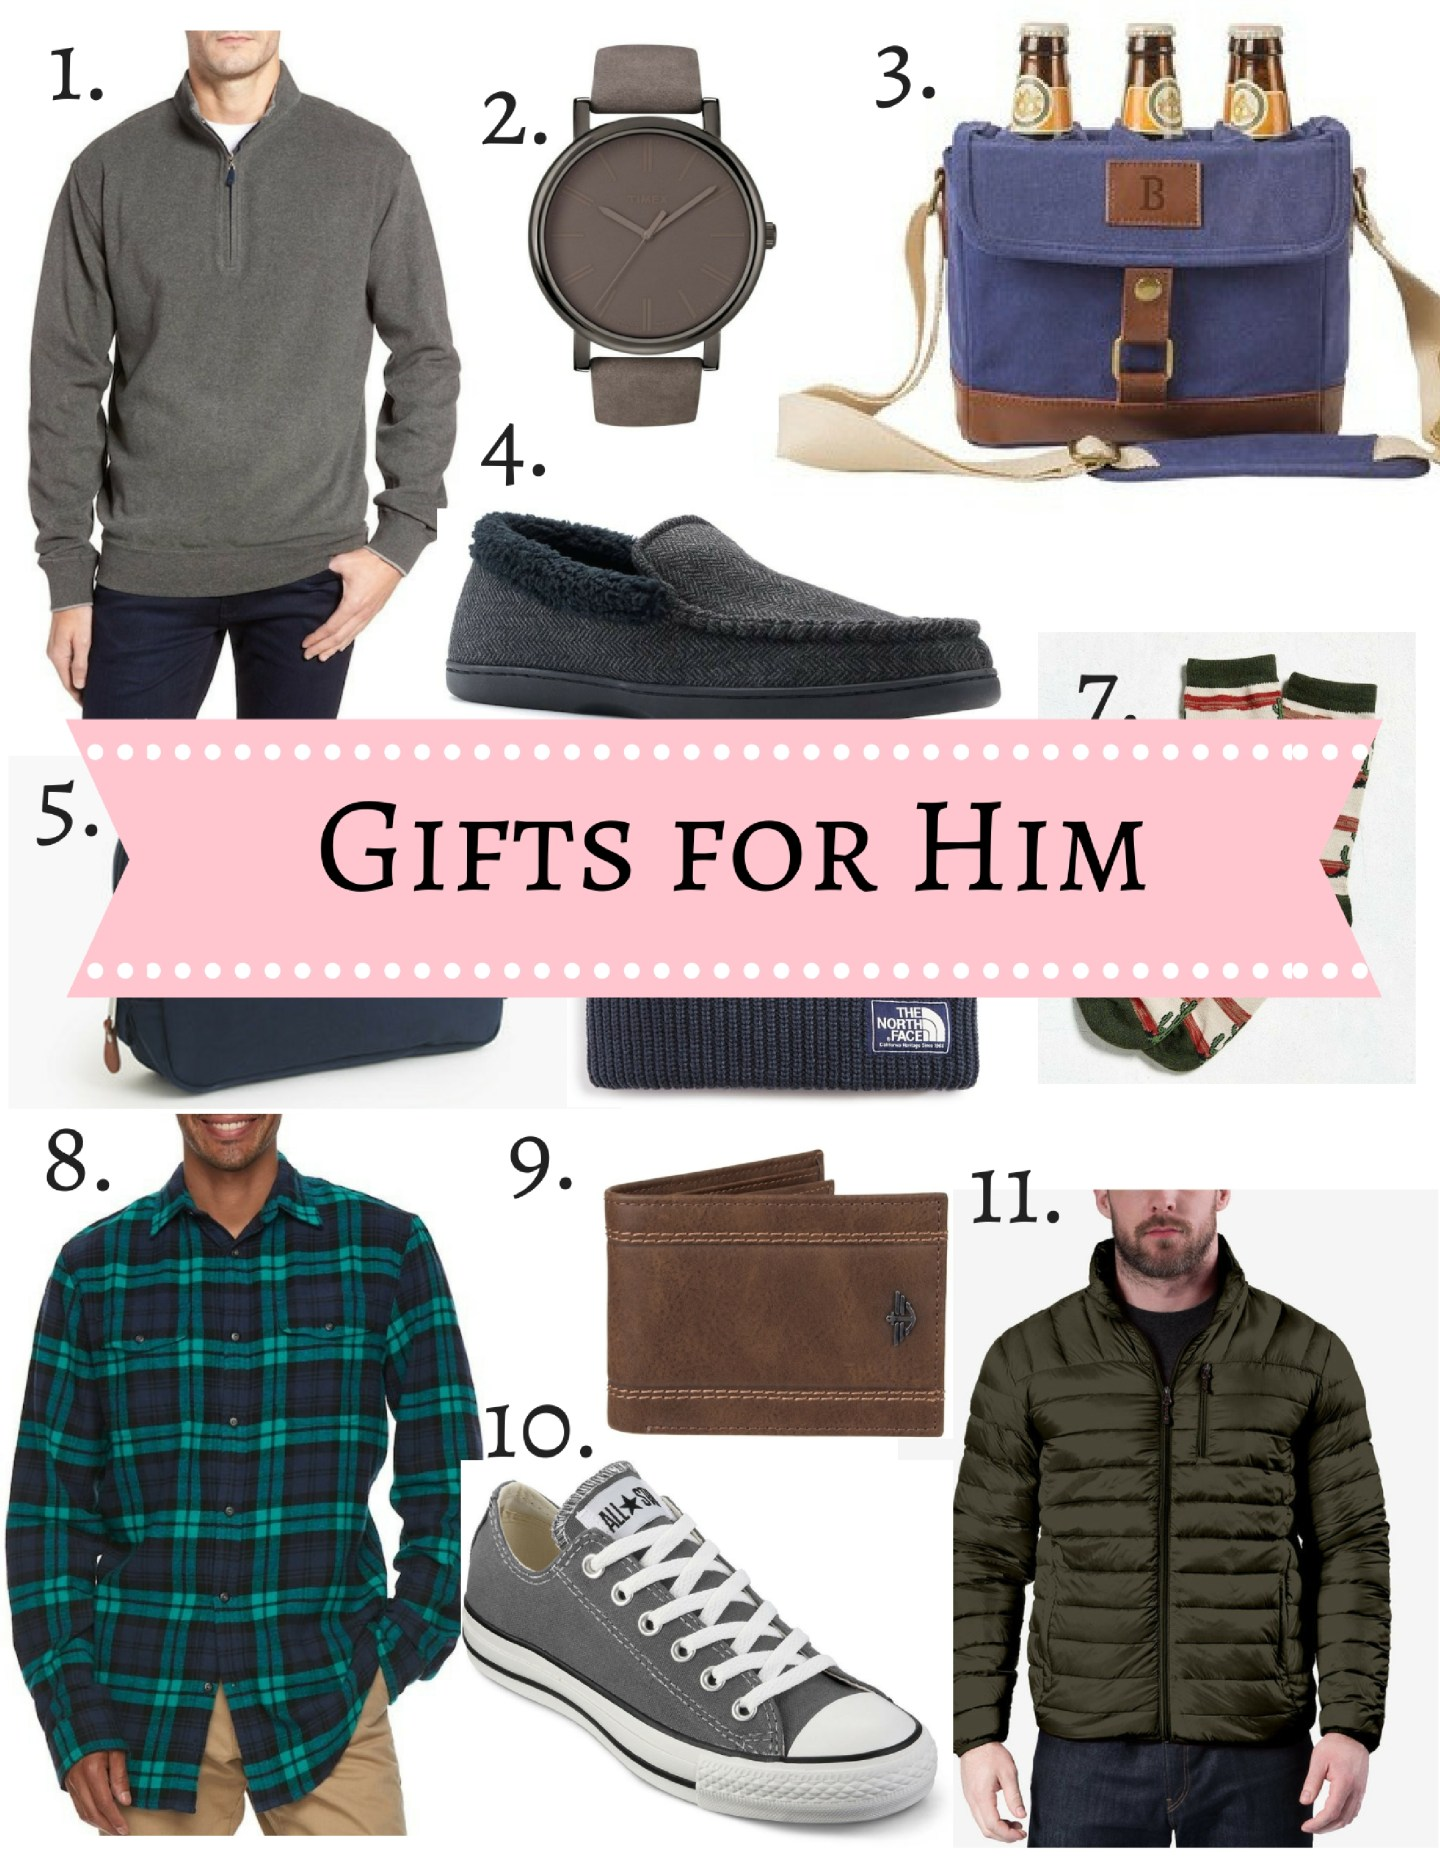 Men's Gift Ideas: Gift Guide for Him (Dad, Brother, Boyfriend, Friend, Family Member)